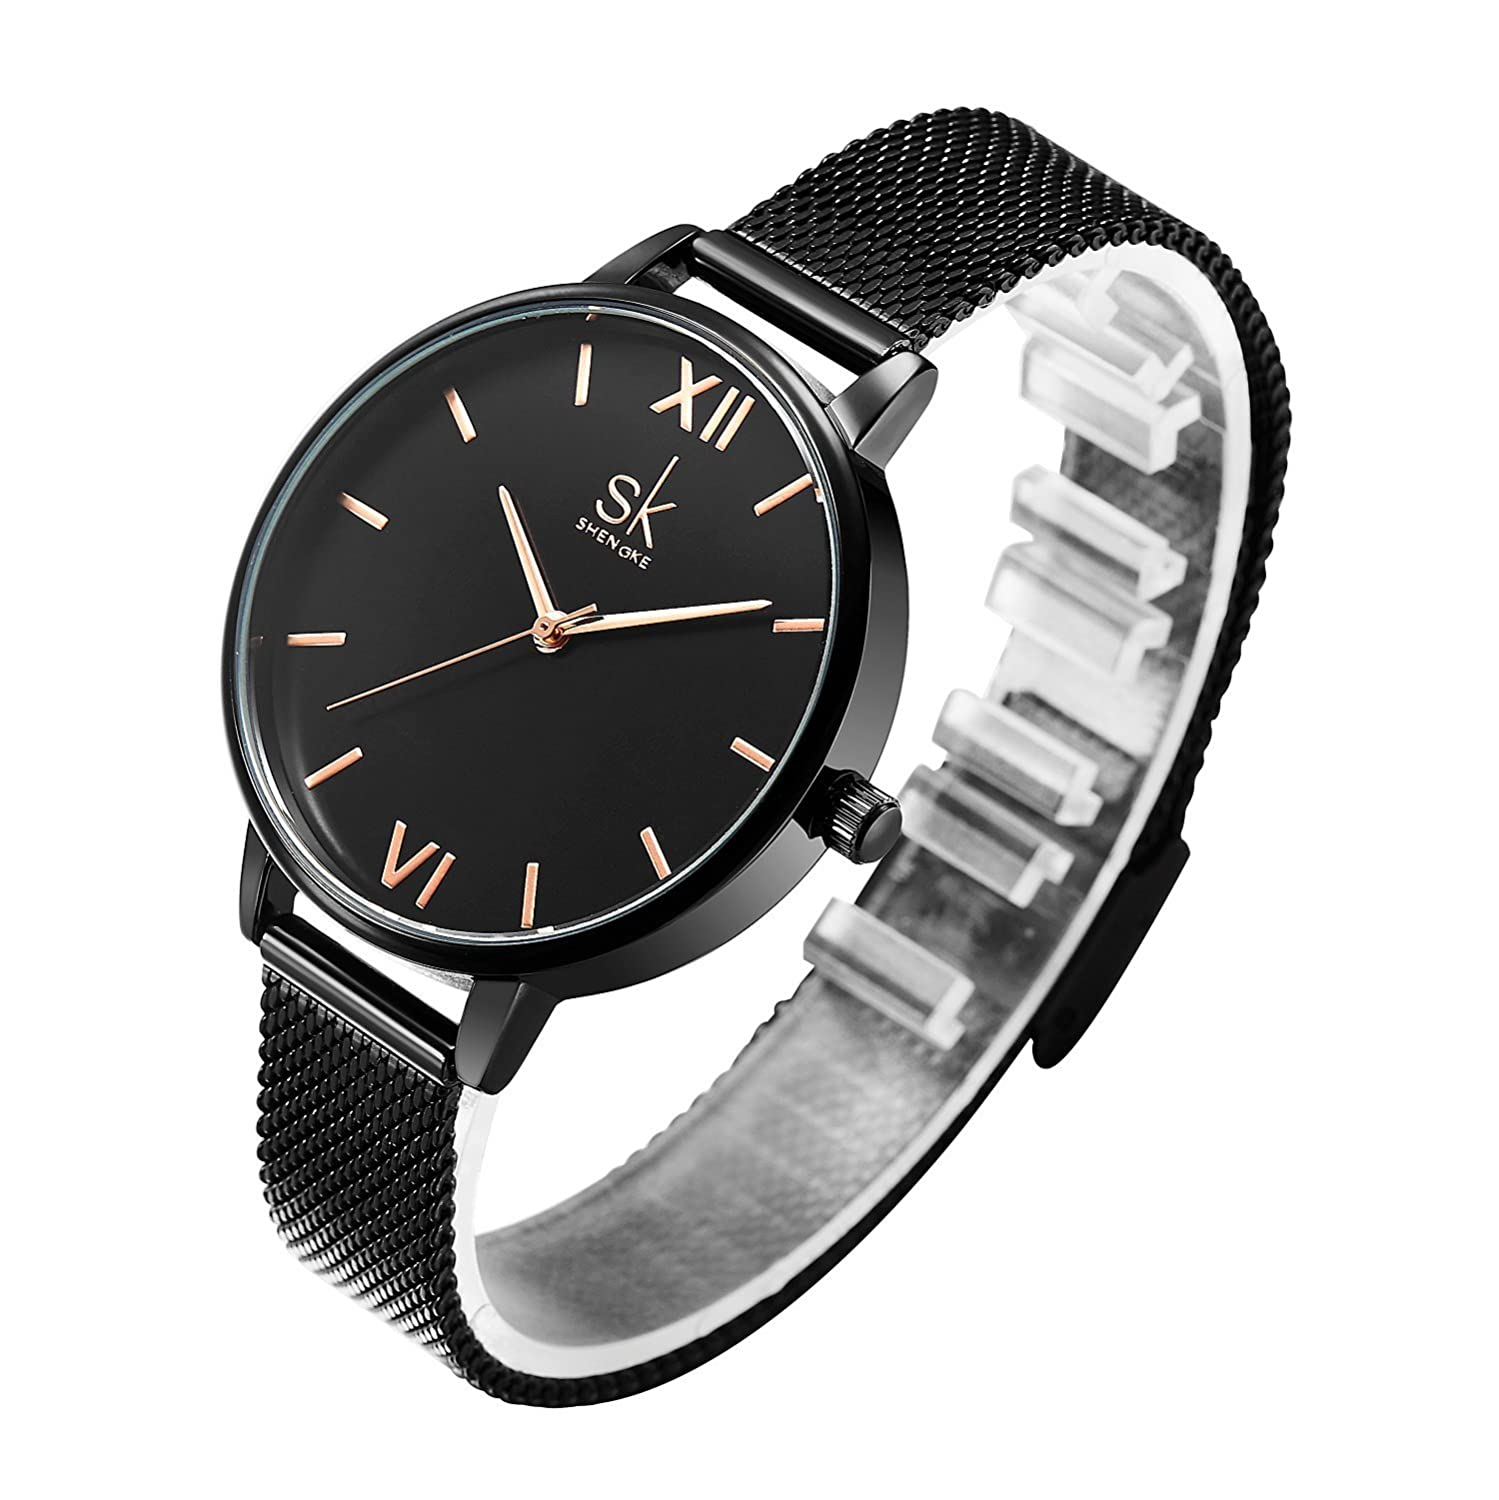 Amazon.com: SHENGKE Creative Simplicity Women Watch Mesh Band Elegant Women Watches Ladies Business Wristwatch: Watches